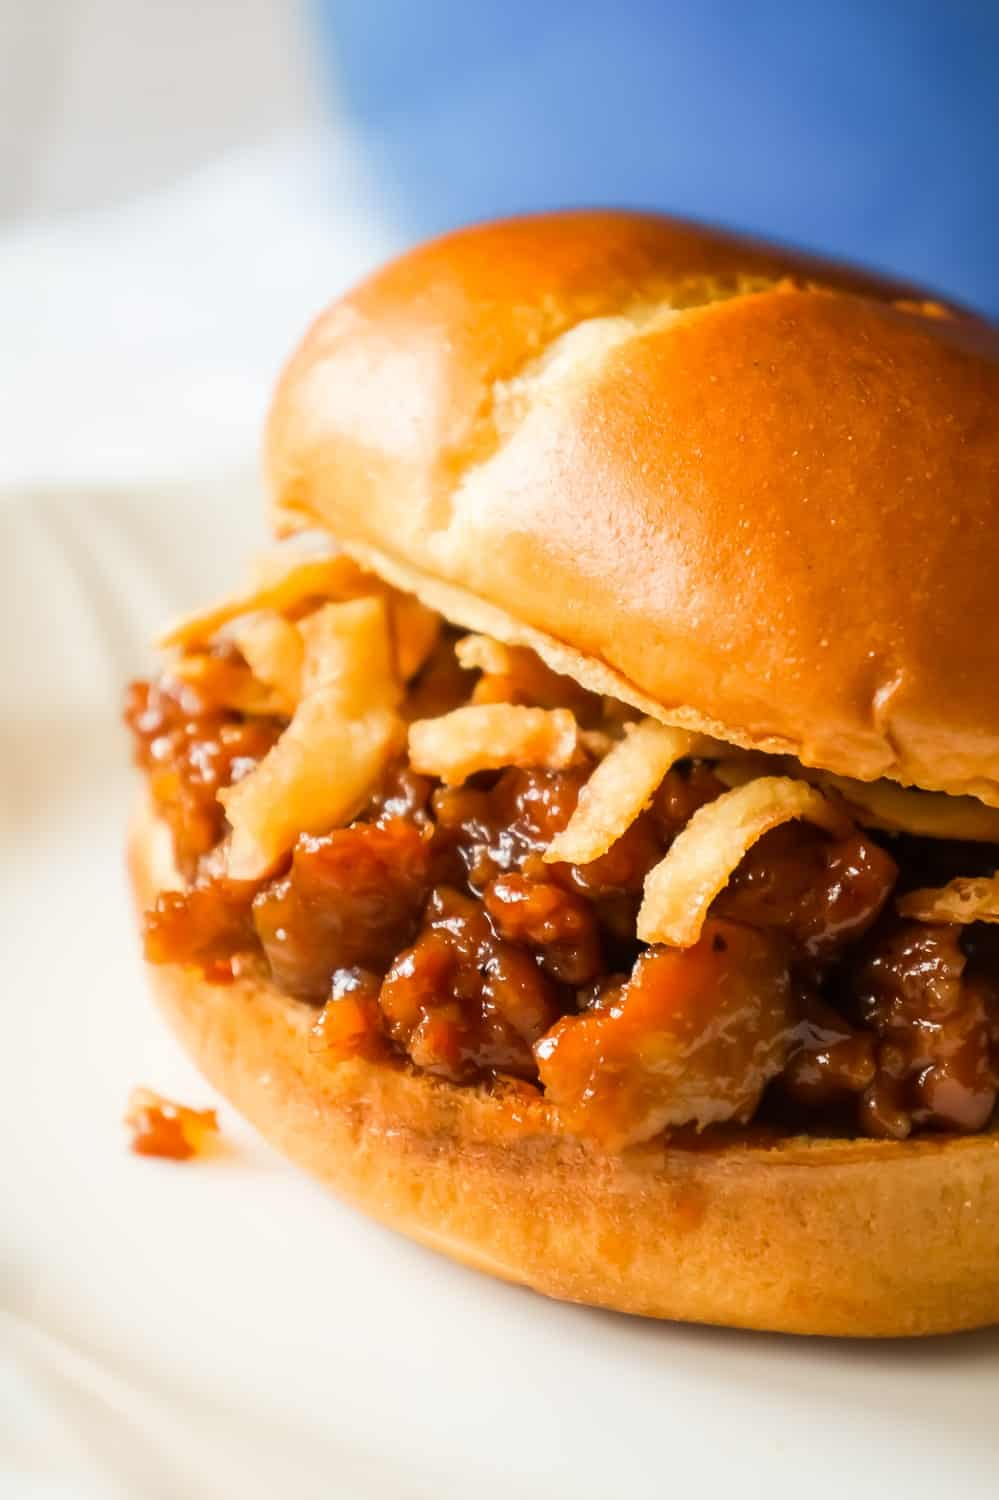 Dr Pepper Pork Sloppy Joes are an easy dinner recipe using ground pork sausage meat and diced onions cooked in Dr Pepper and BBQ sauce.